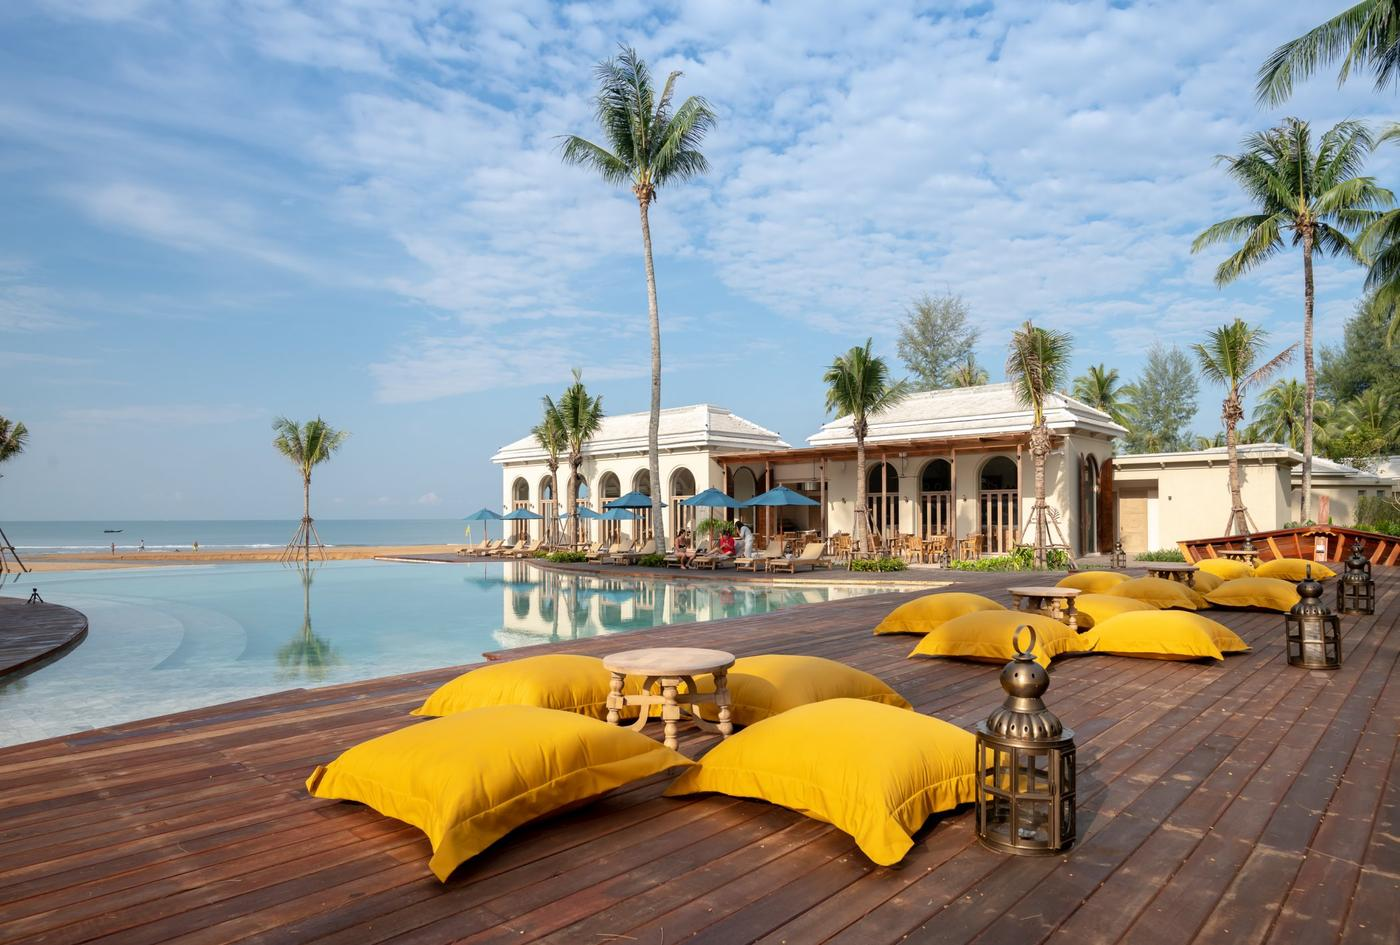 Main pool, Devasom Khao Lak